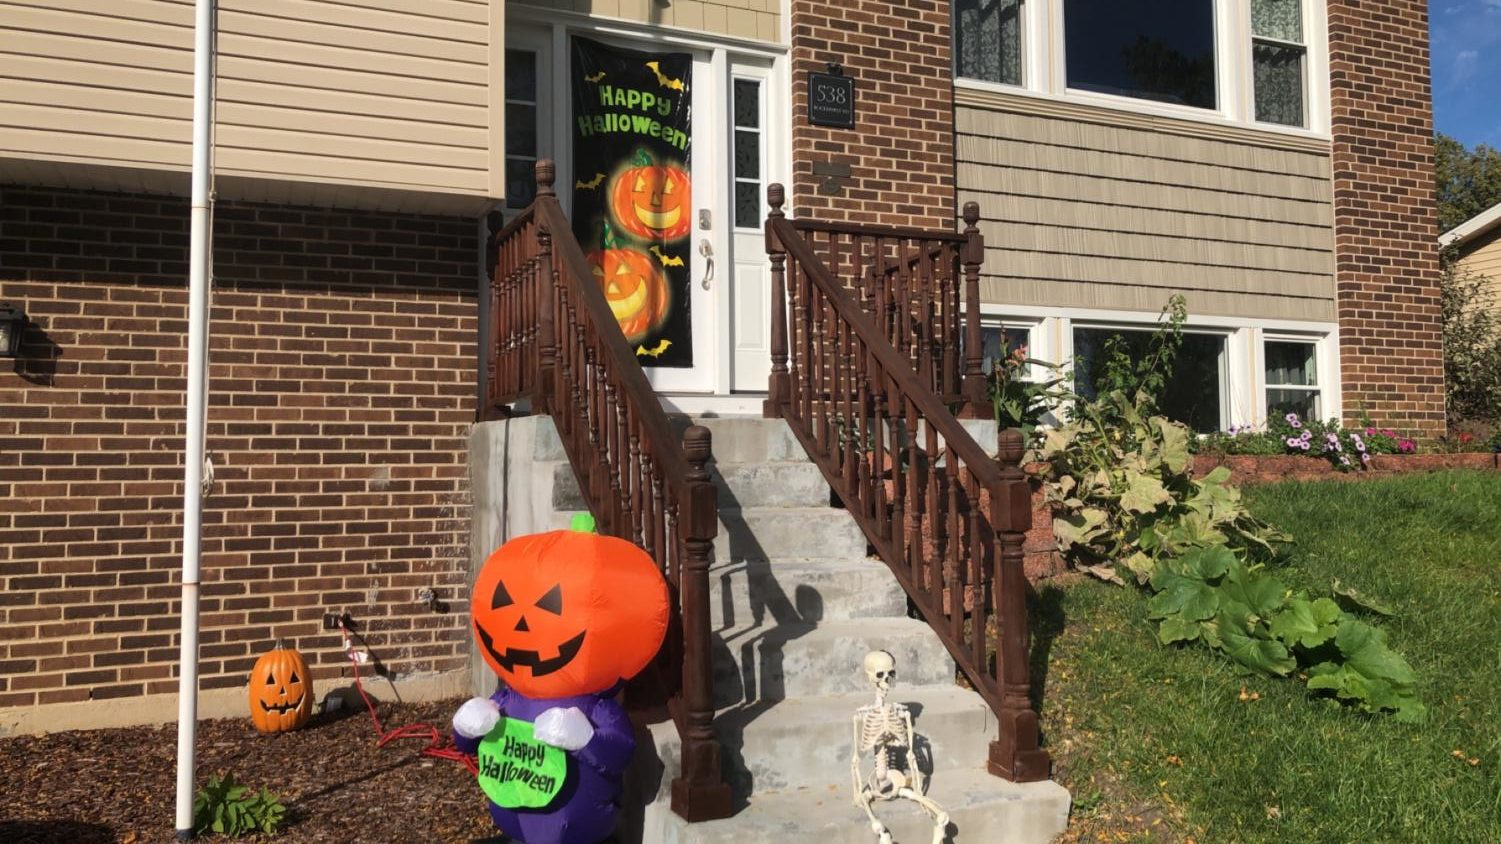 Houses already beginning to set up their Halloween decorations.